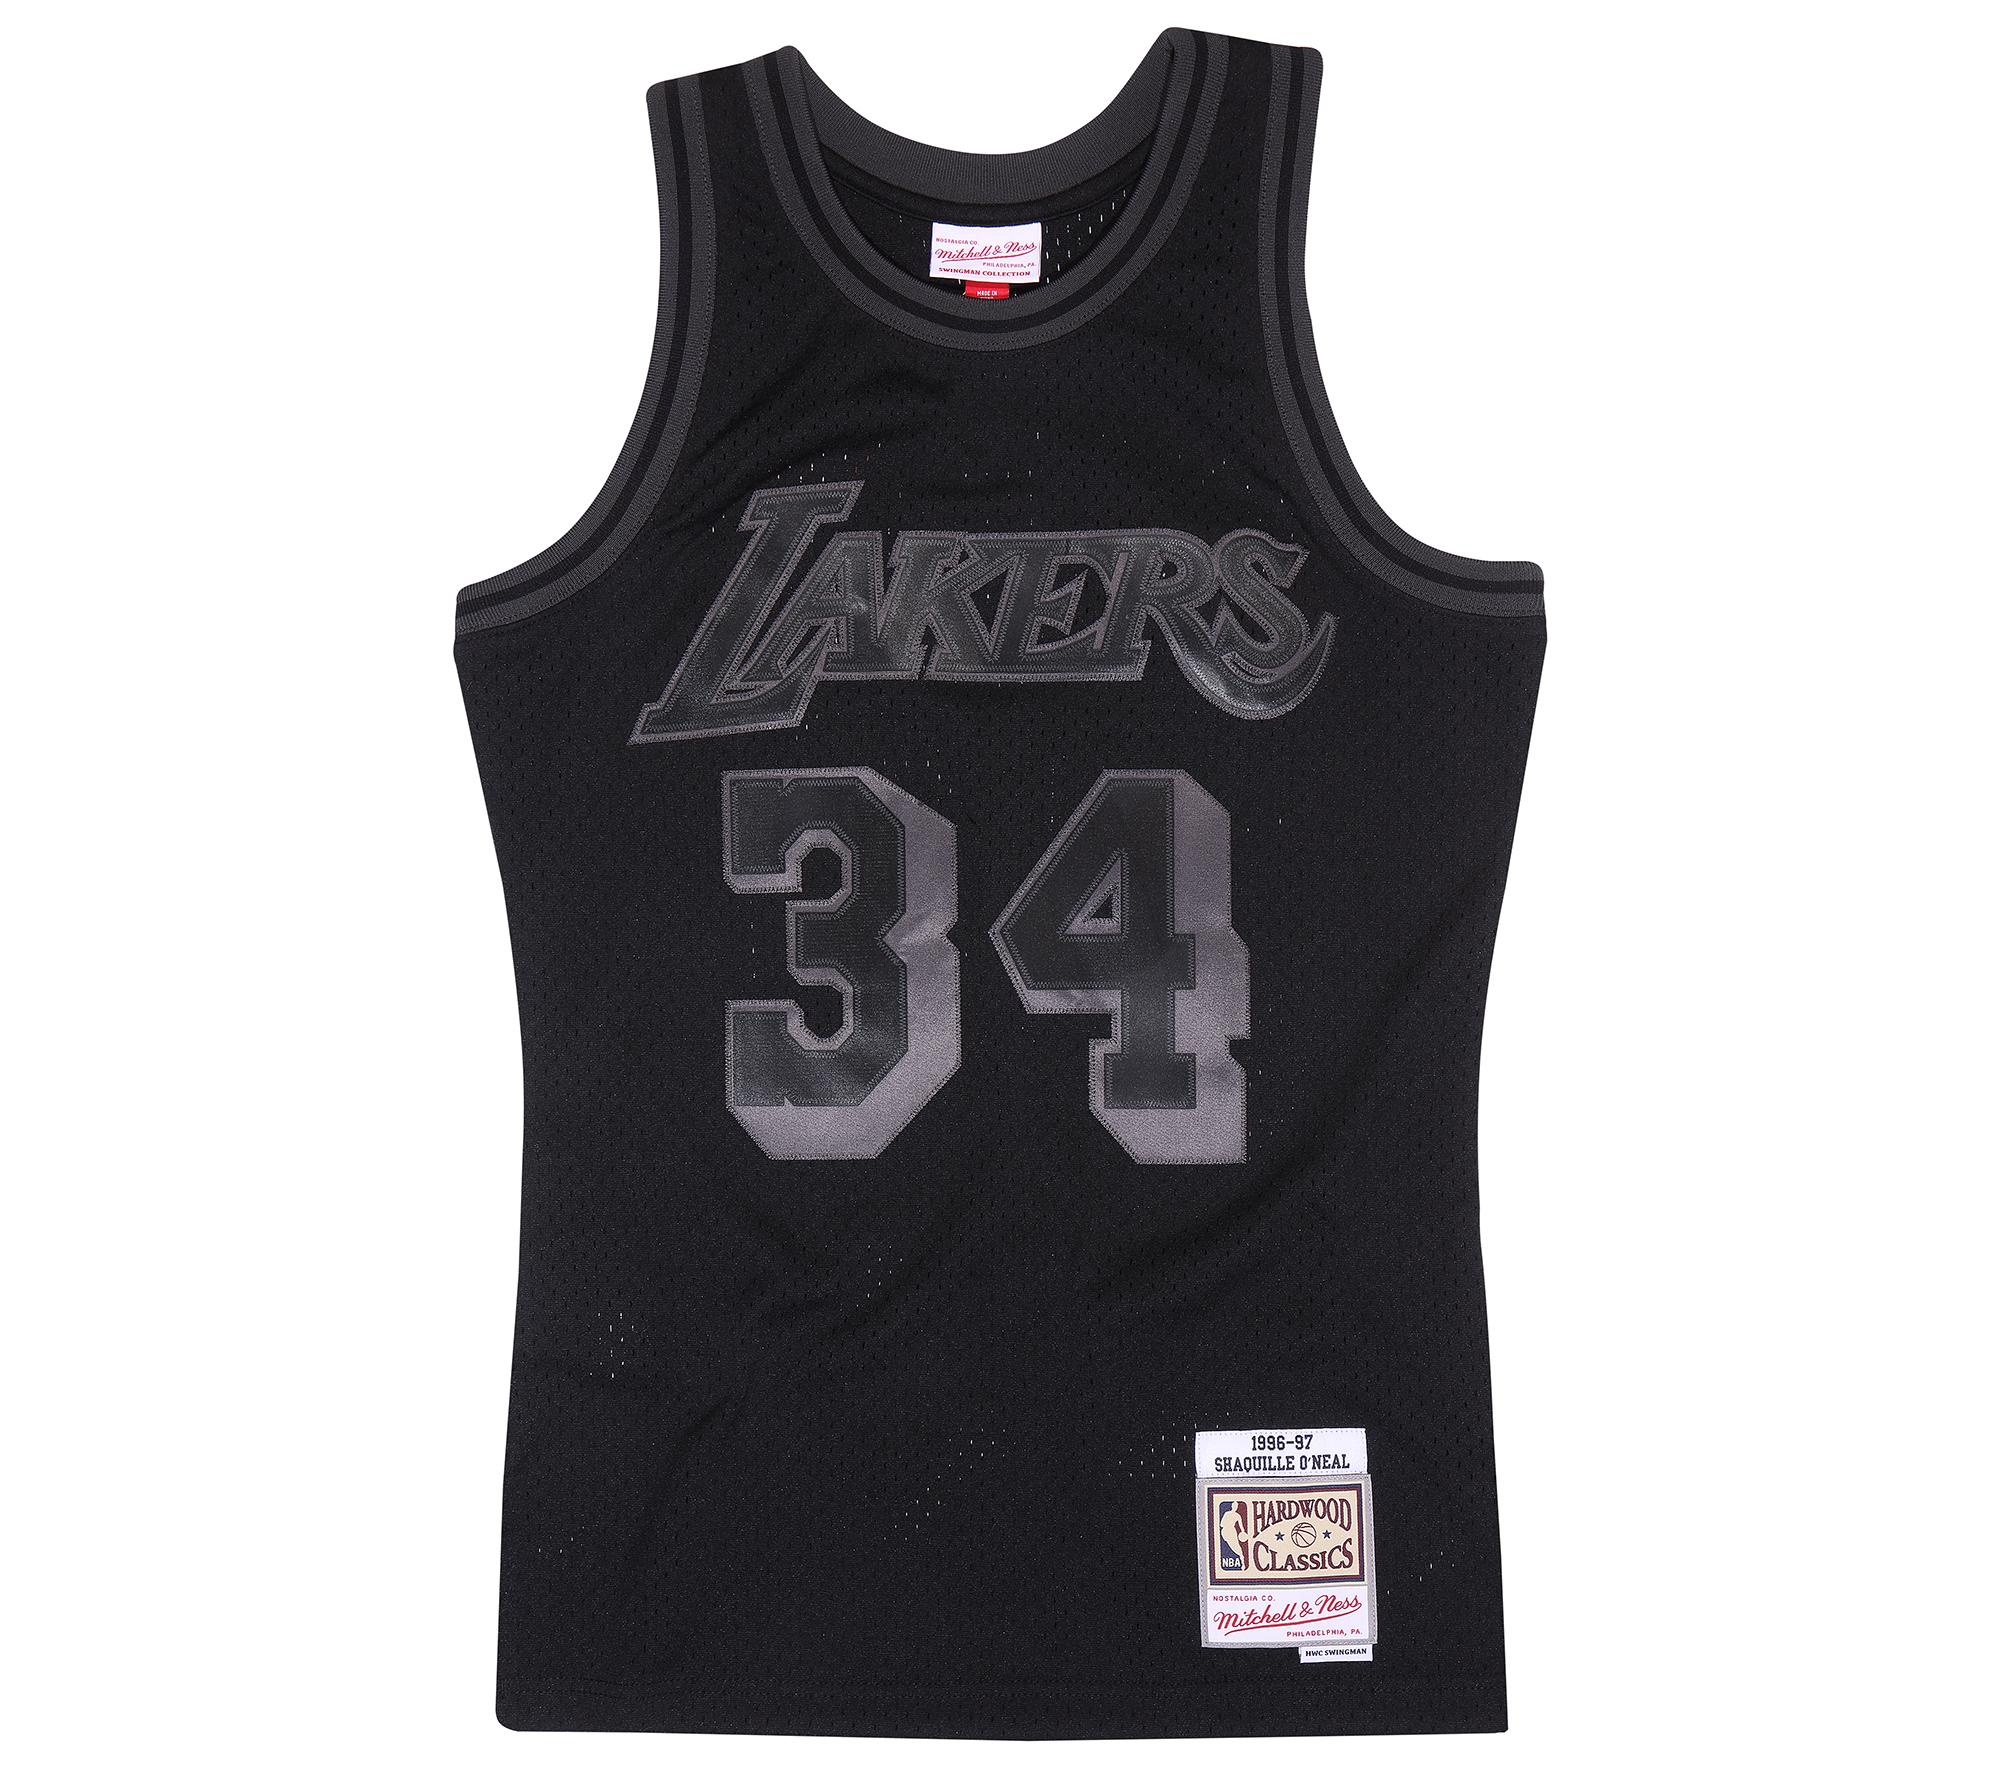 competitive price 17340 d4f05 Mitchell & Ness | LA Lakers Shaquille O'Neal Black to Black ...